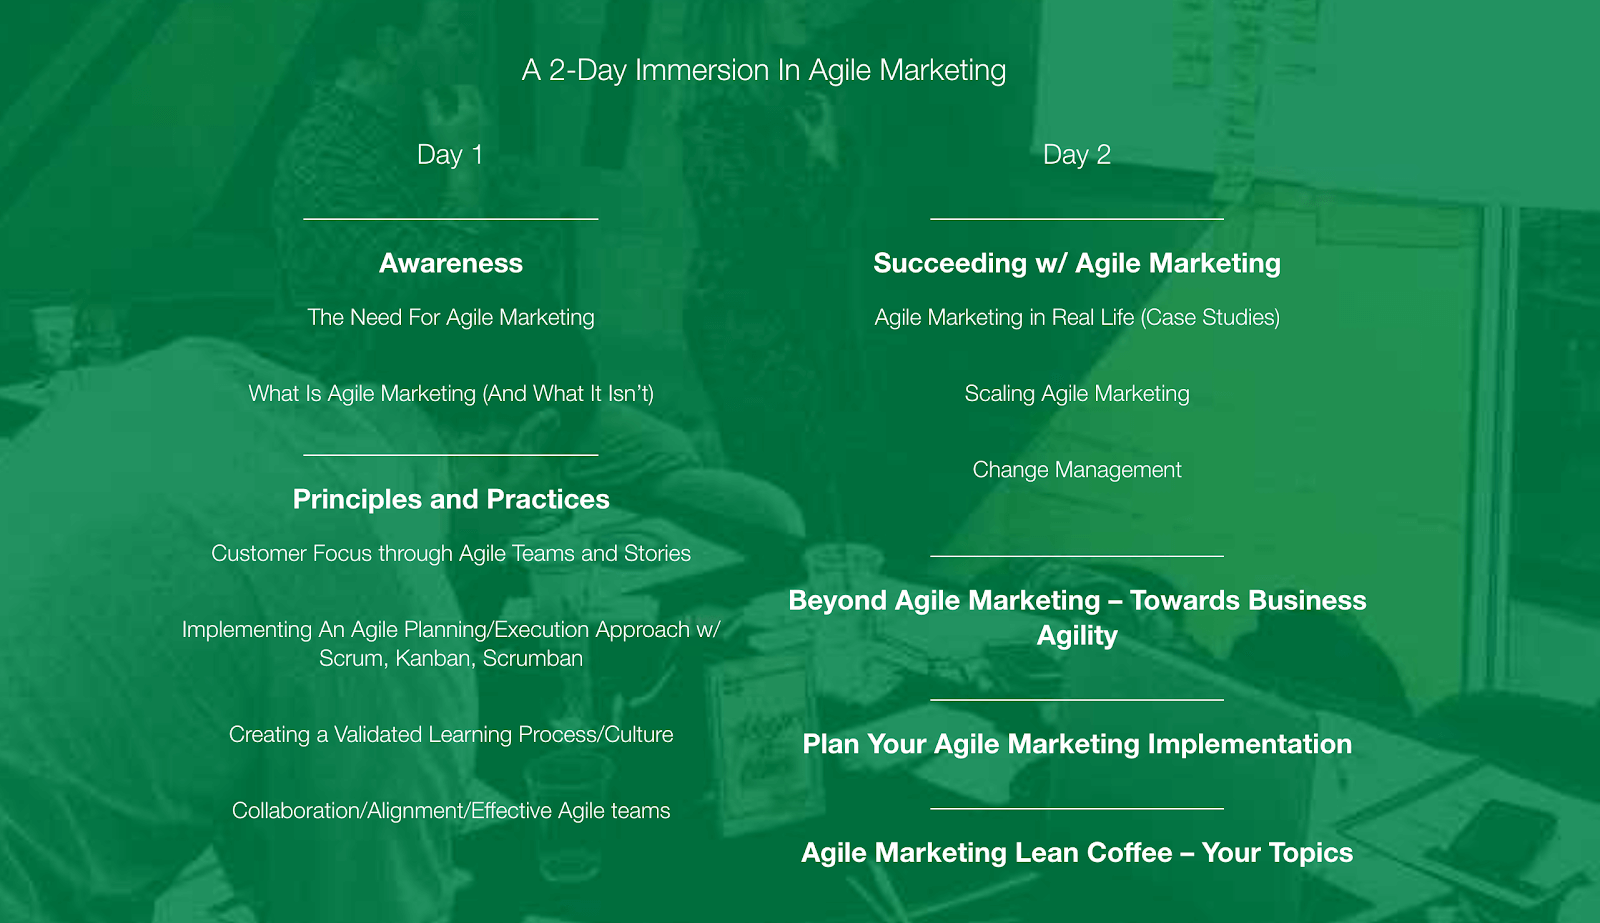 AgileSparks: Lean/Agile Marketing Workshop Agenda